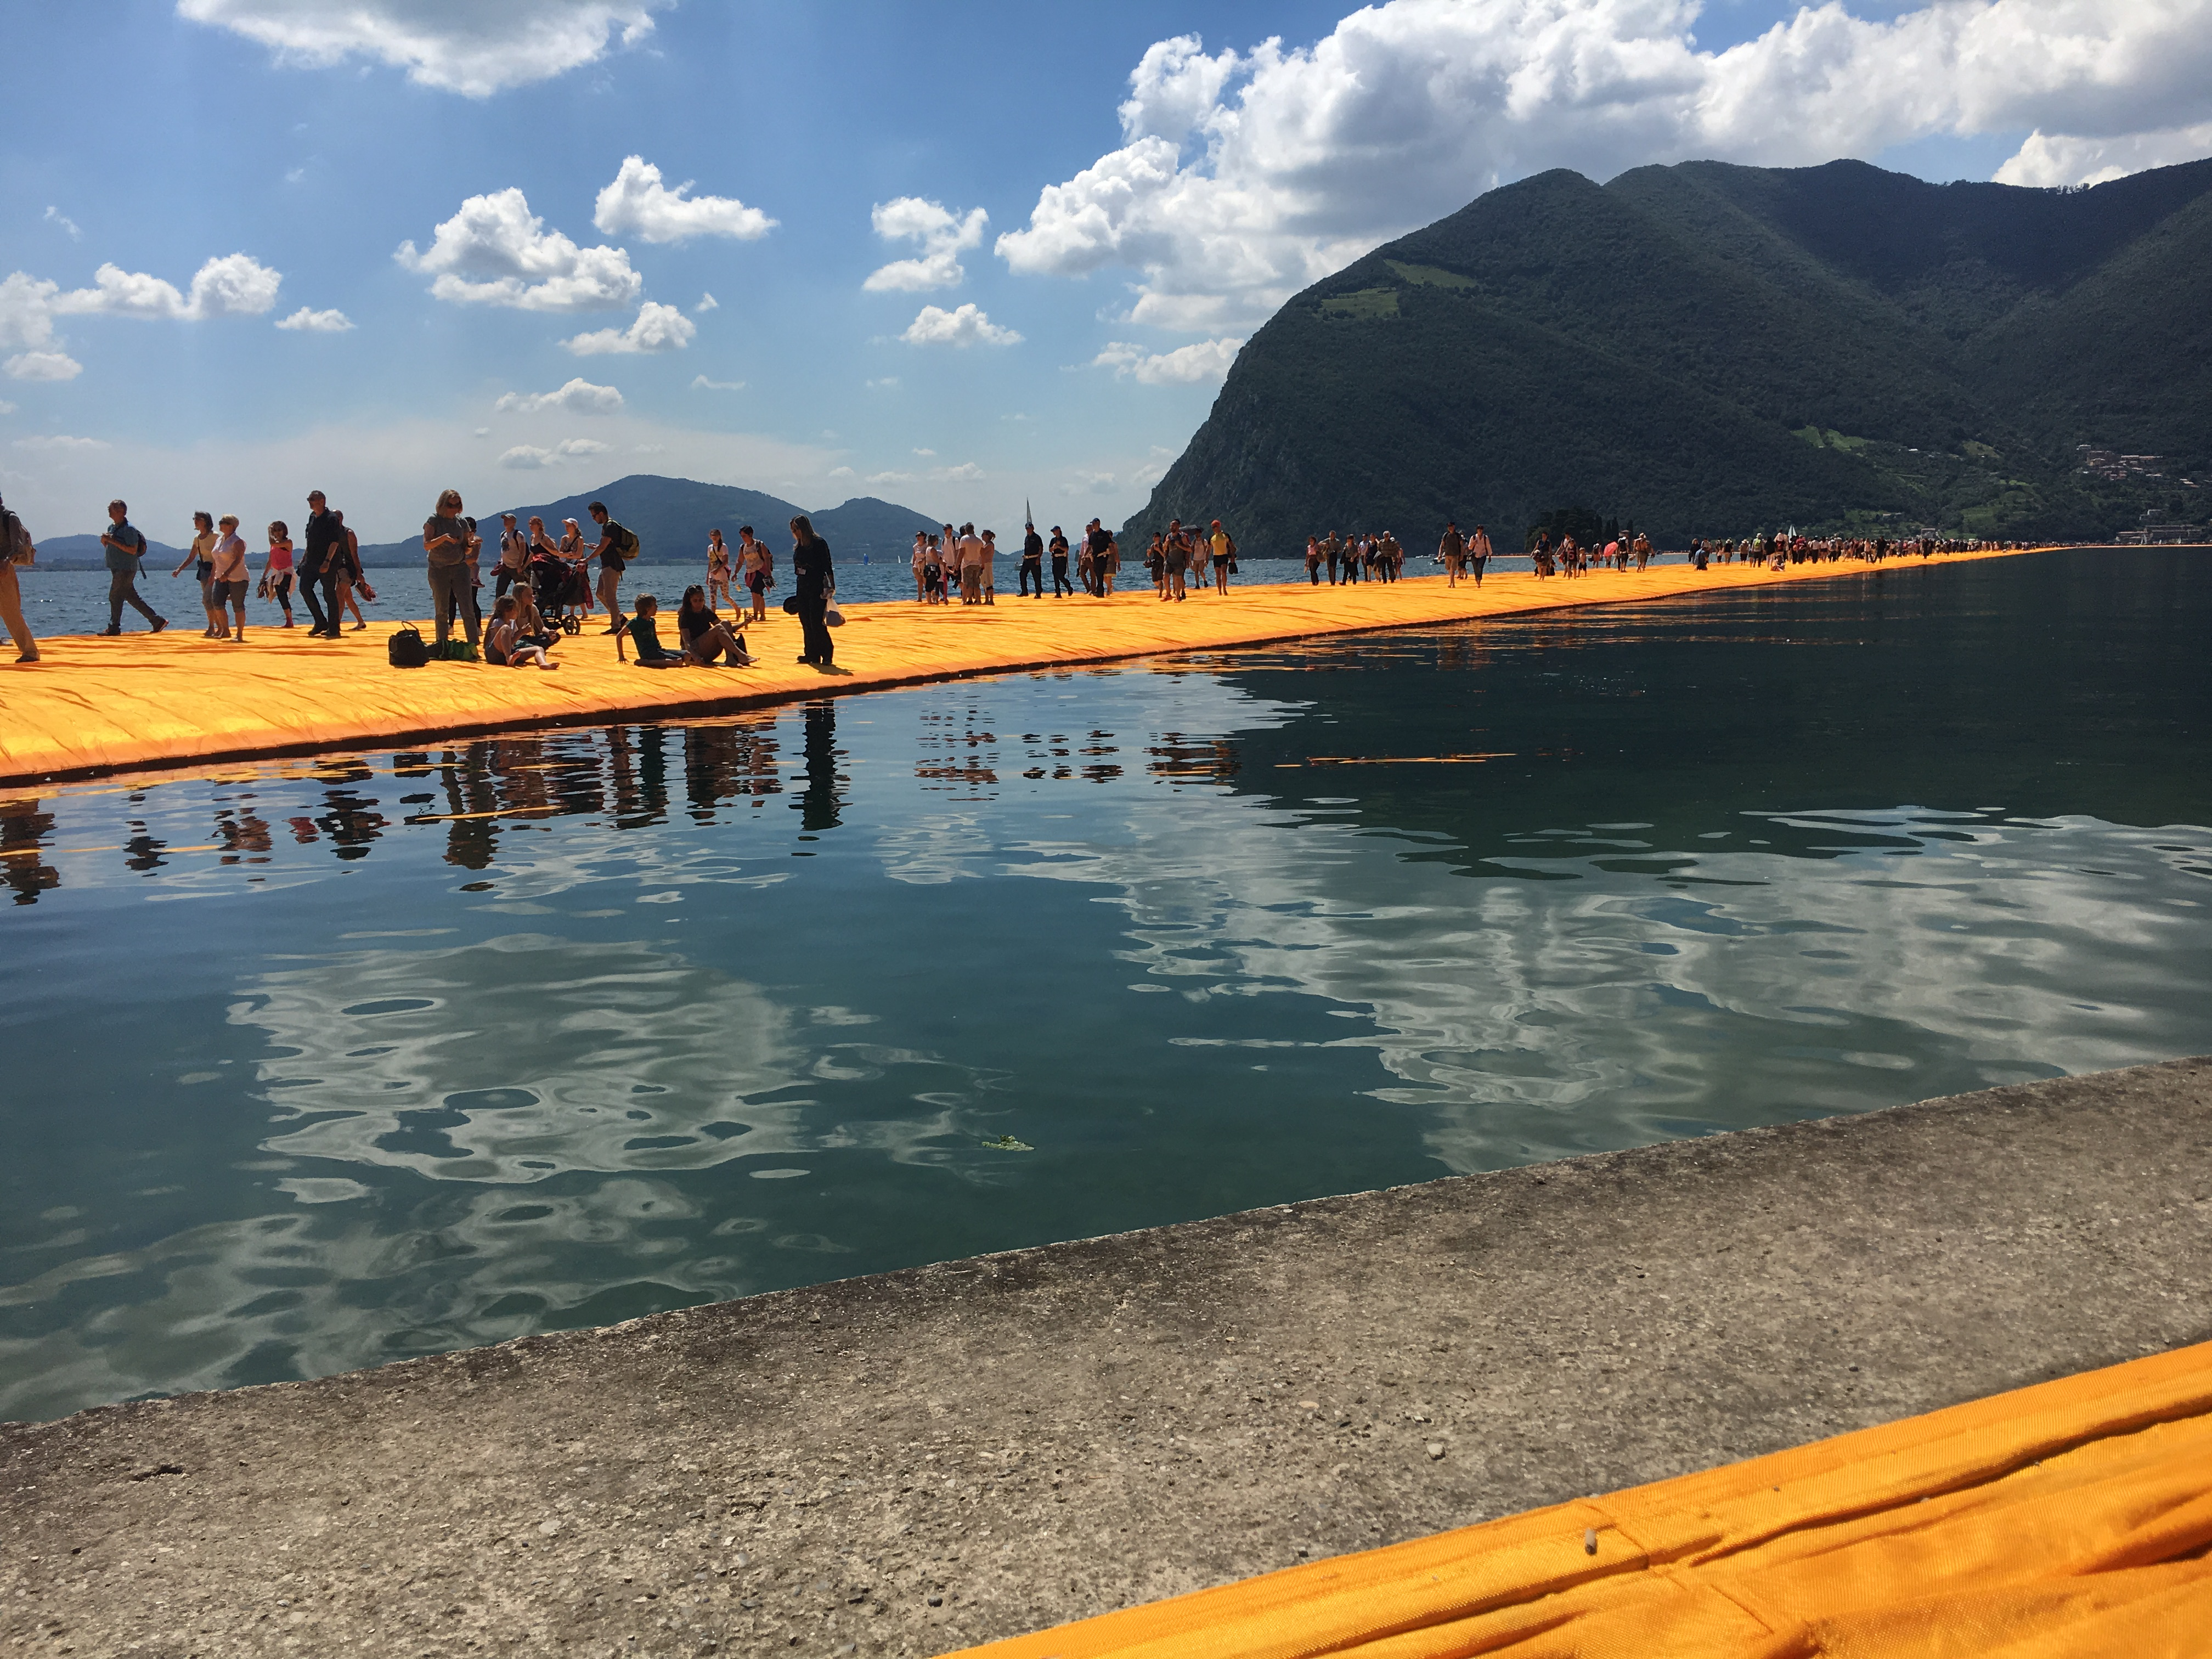 The floating piers – camminiamo sulle acque –